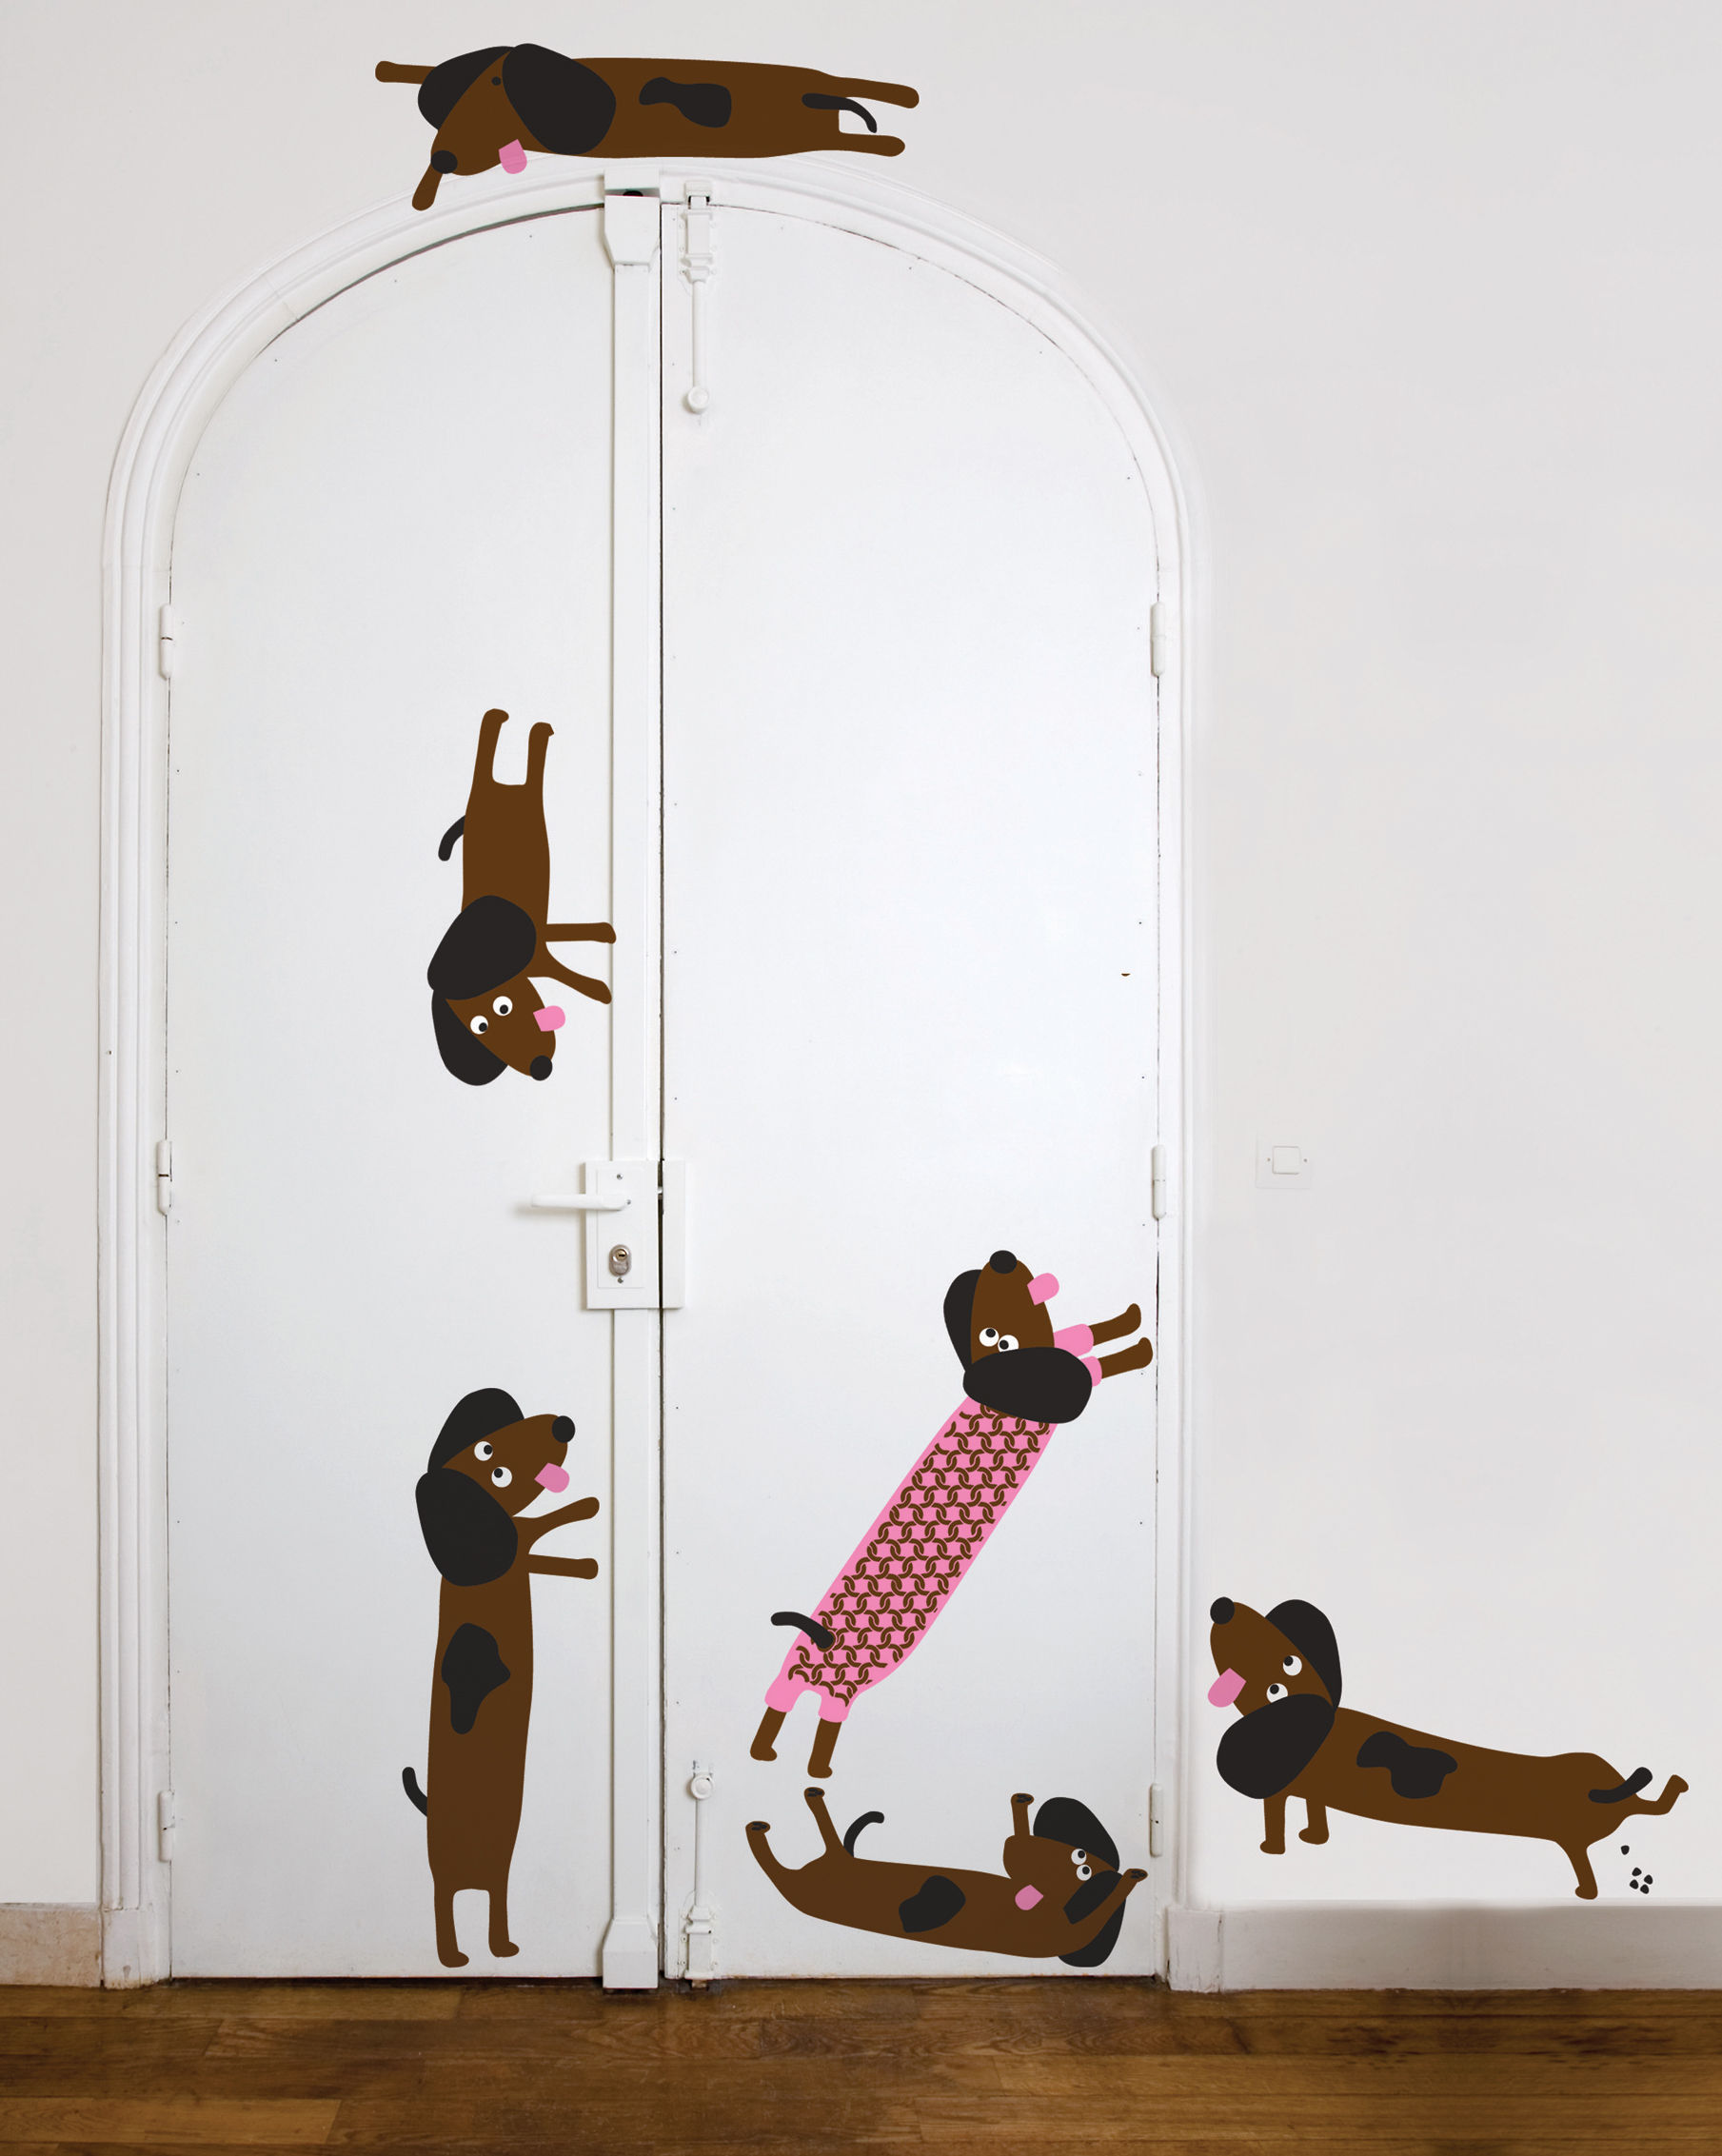 Decoration - Wallpaper & Wall Stickers - Dog en kit 2 Sticker by Domestic - Brown / grey / pink - Vinal